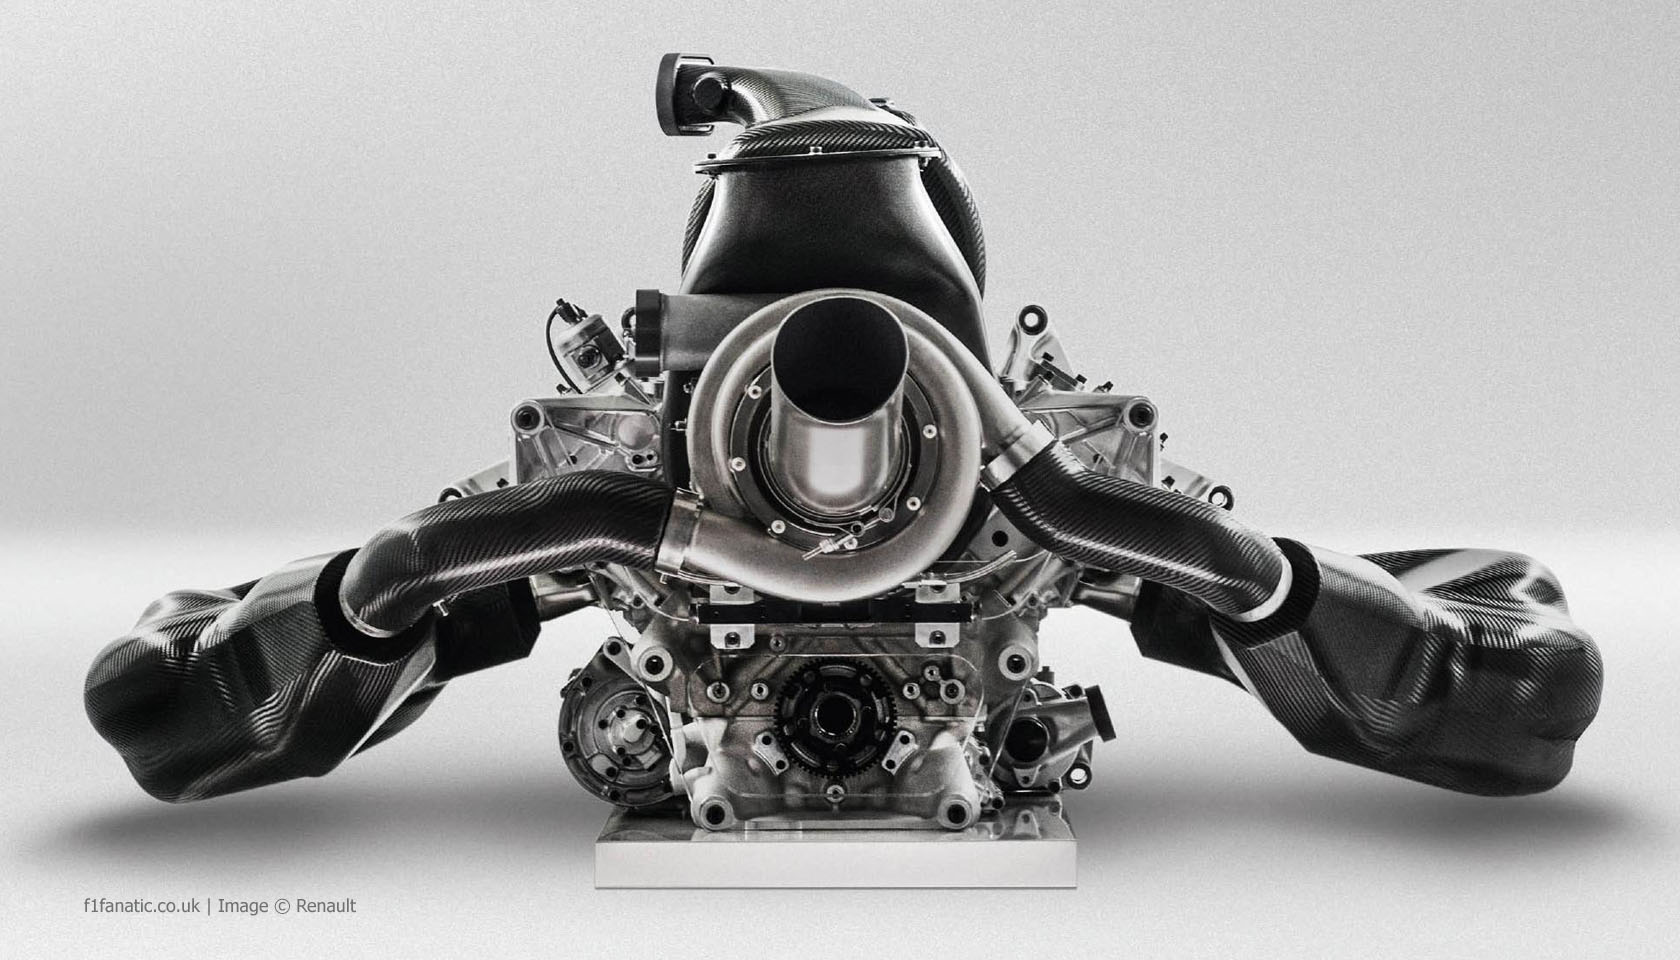 new engines increase race strategy risks taffin f1 fanatic. Black Bedroom Furniture Sets. Home Design Ideas